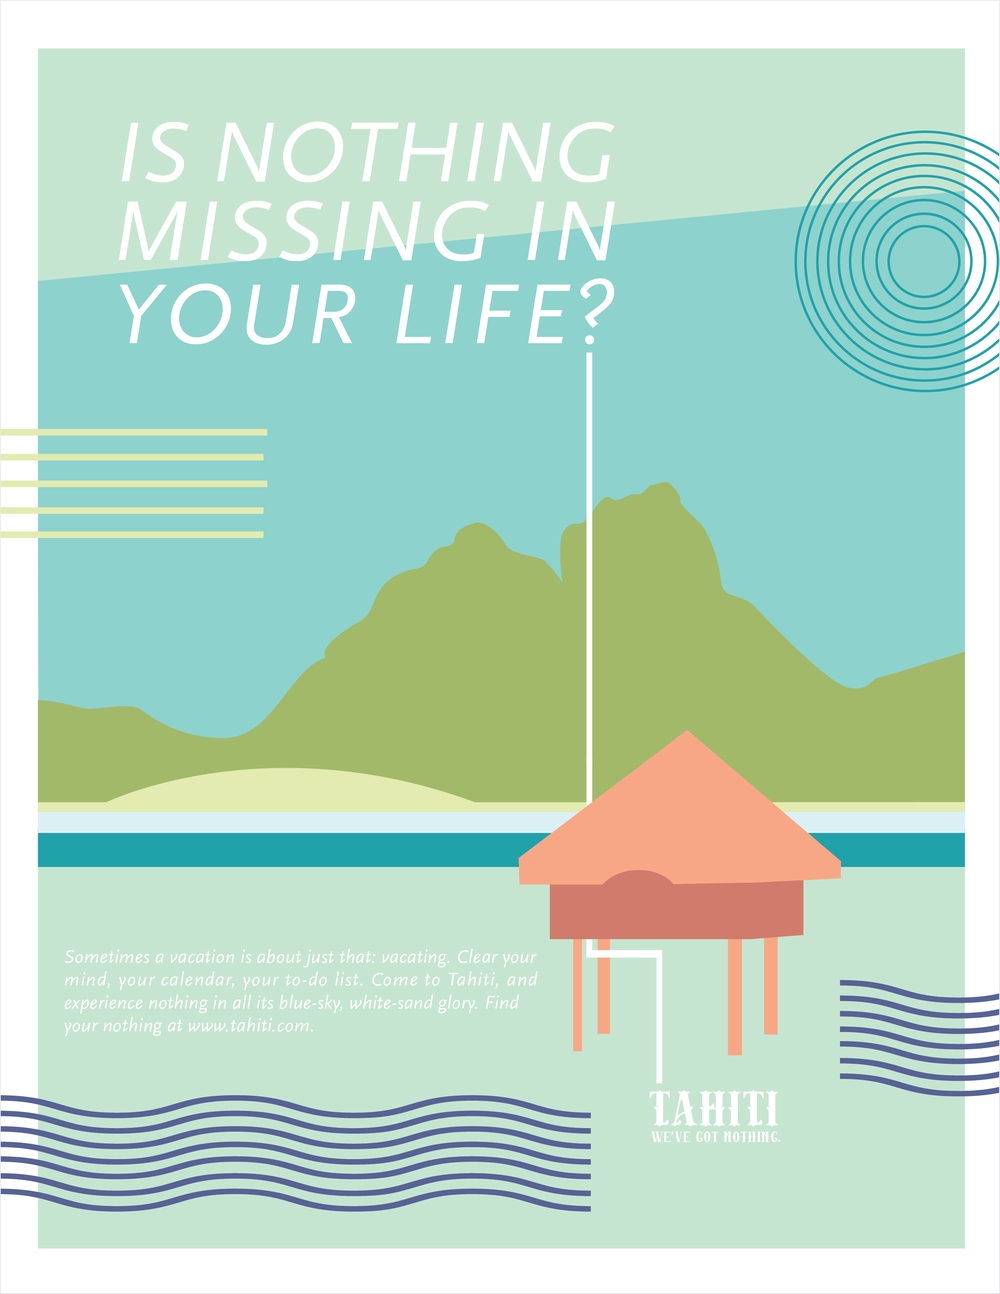 Tahiti Illustrative hut-04 final 080416-04.png